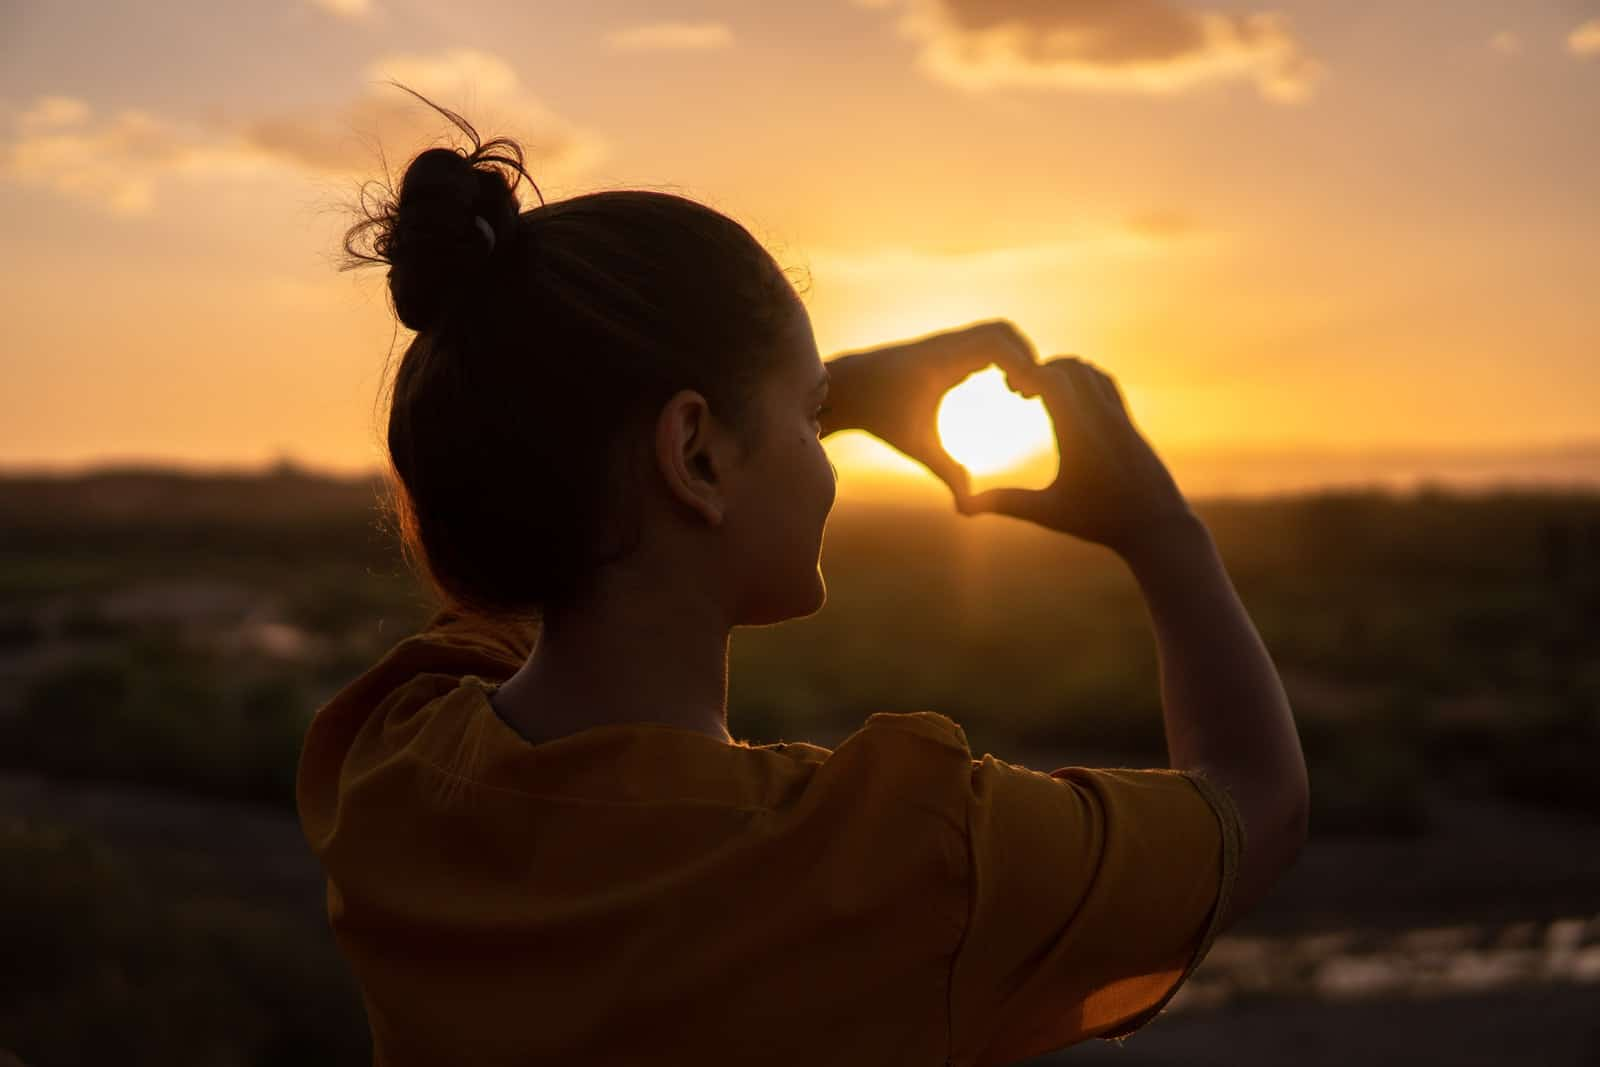 Woman making a heart symbol with hands at sunset